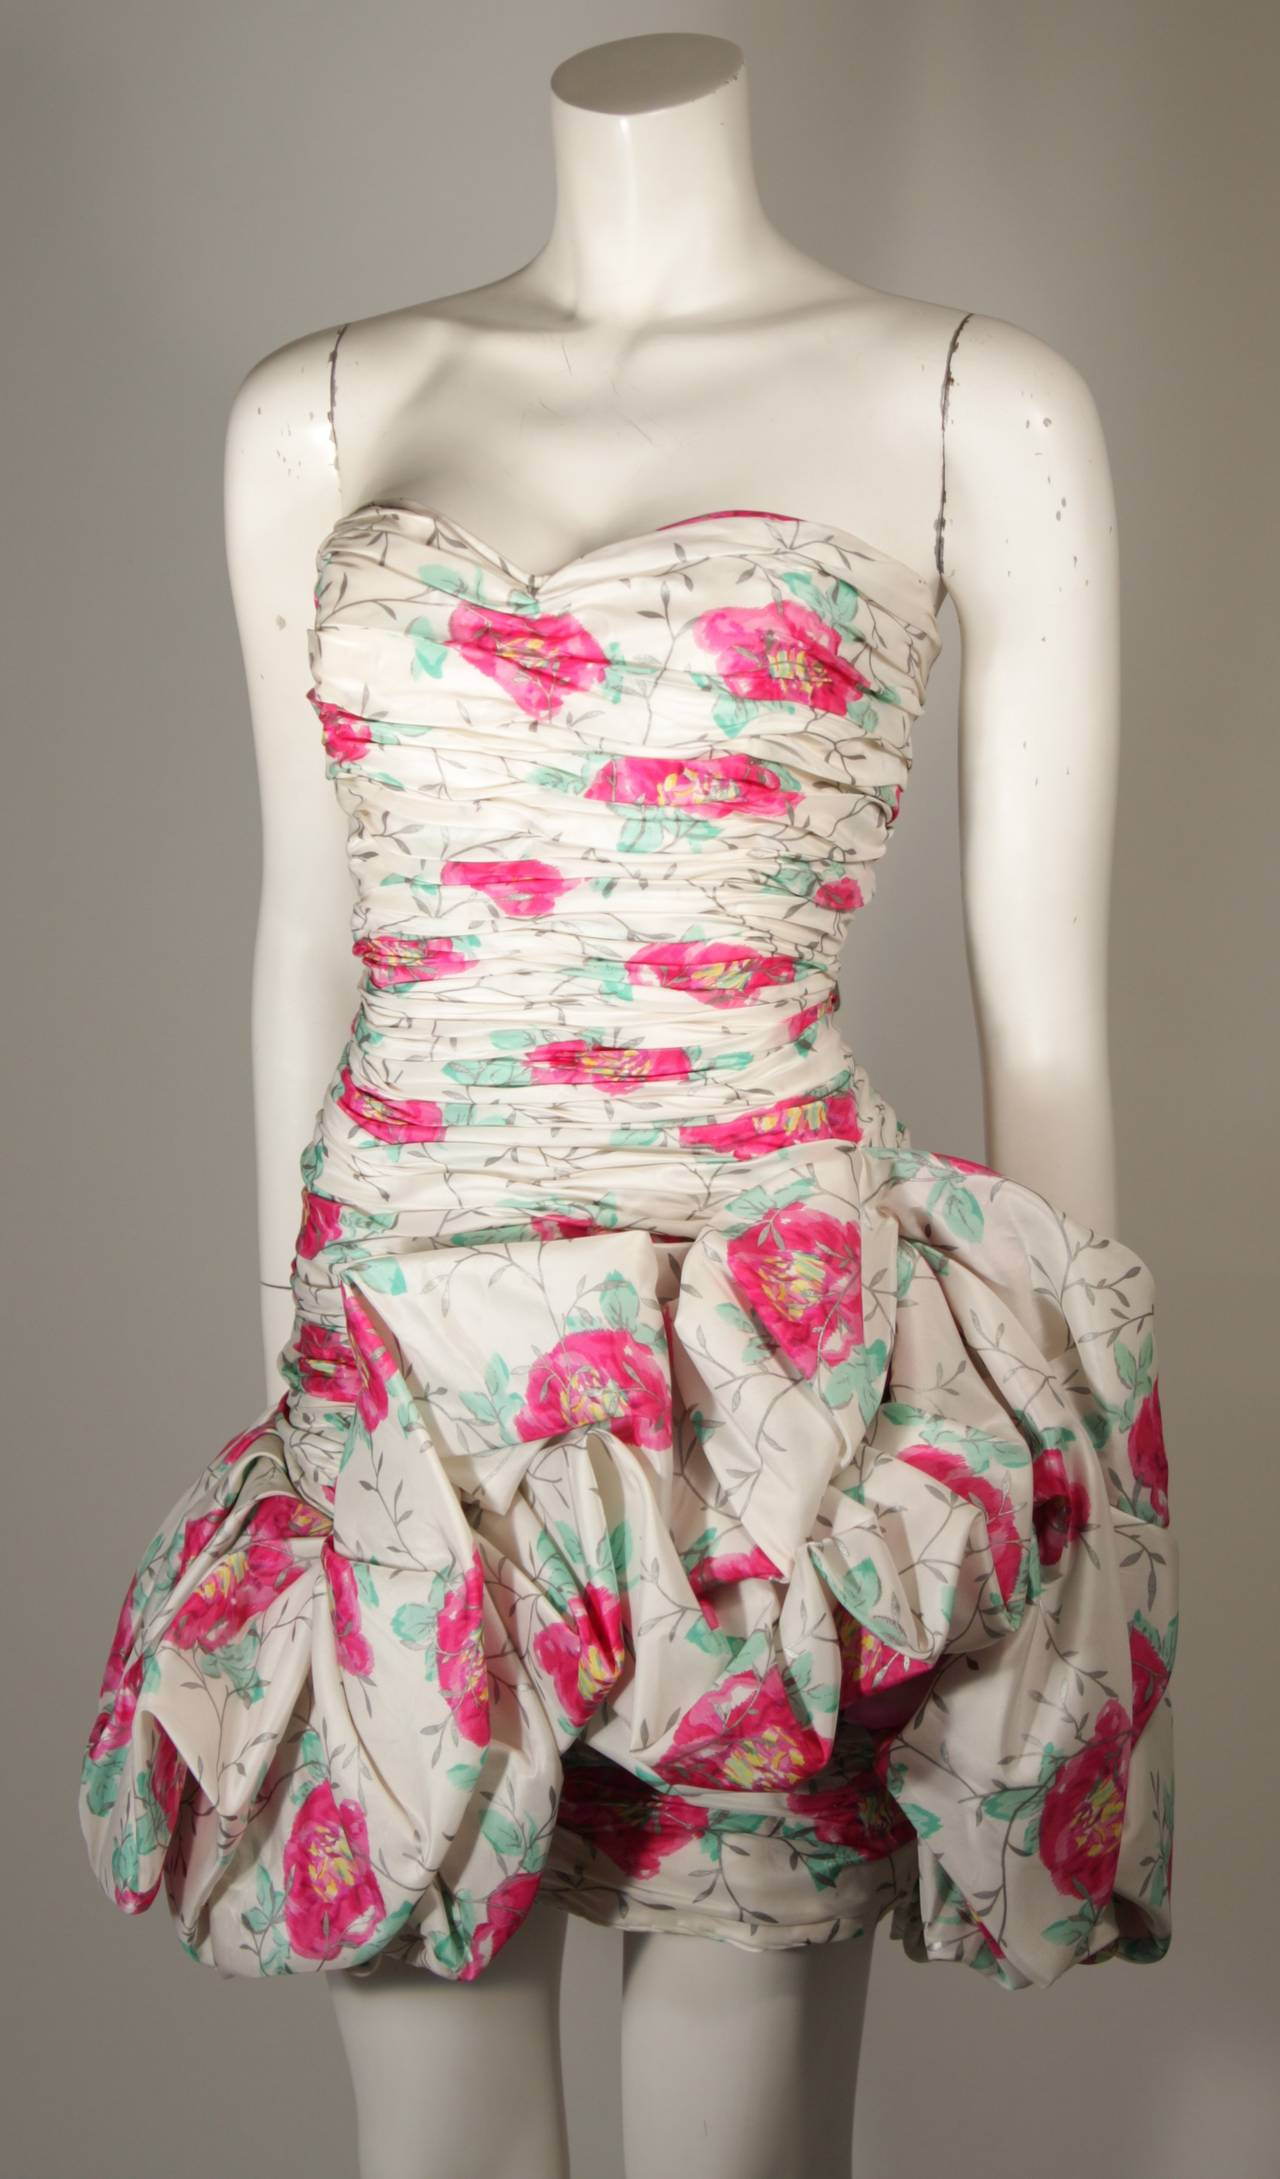 Ungaro White Silk Cocktail Dress with Pink & Green Floral Design Size 8 In Excellent Condition For Sale In Los Angeles, CA